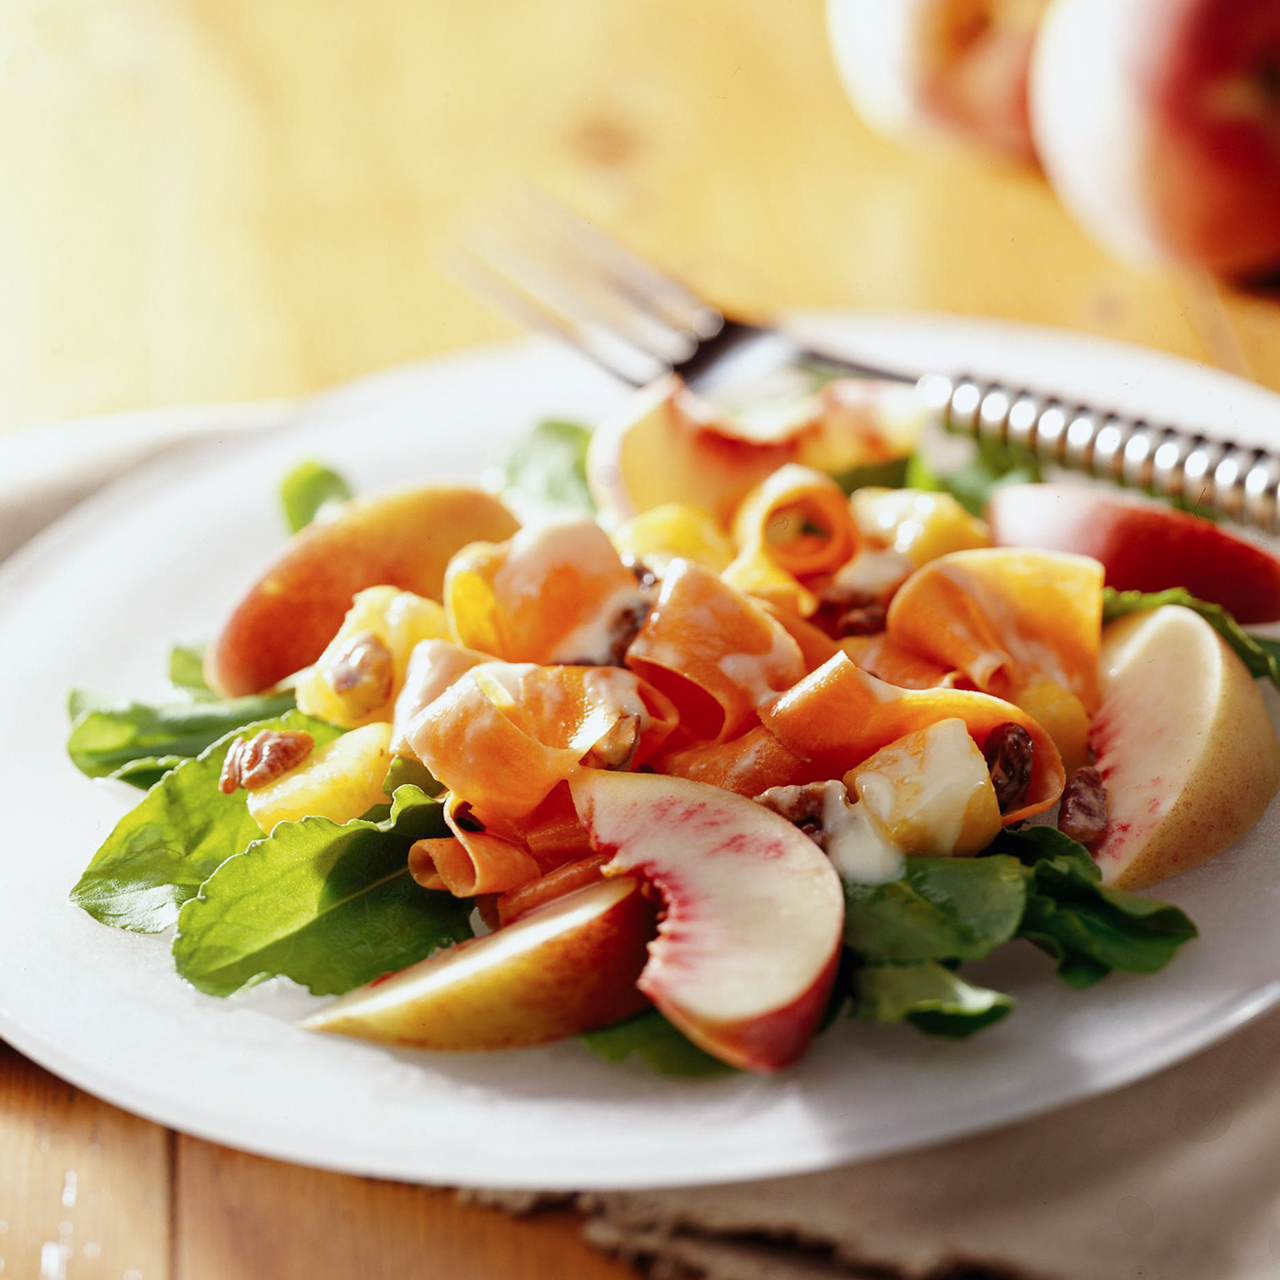 Carrot, Fruit, and Spinach Salad